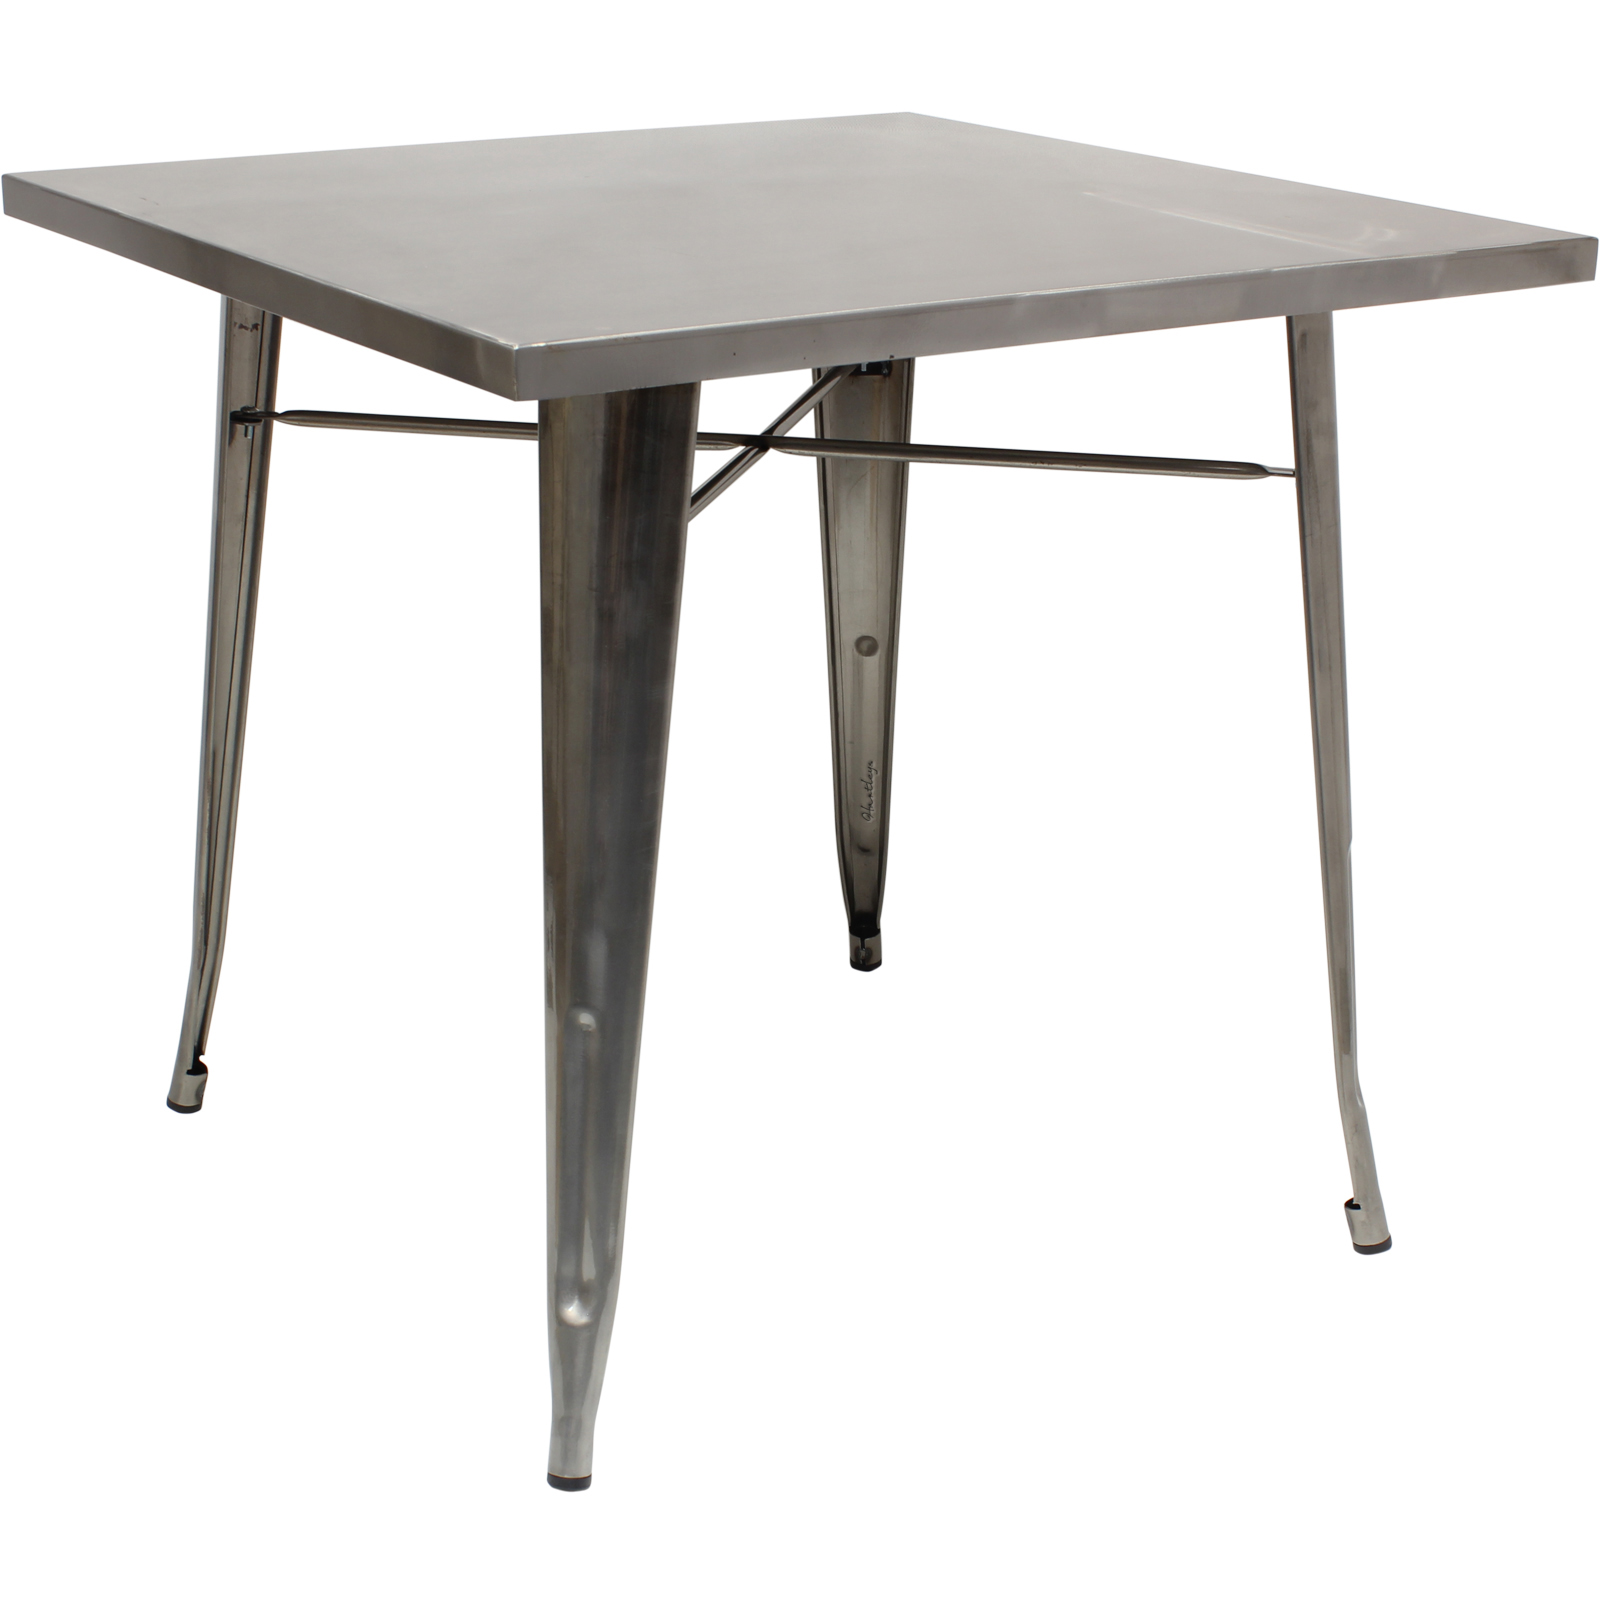 HARTLEYS LARGE GUNMETAL SQUARE INDUSTRIAL METAL TABLE  : TAB001F from www.ebay.co.uk size 1600 x 1600 jpeg 438kB